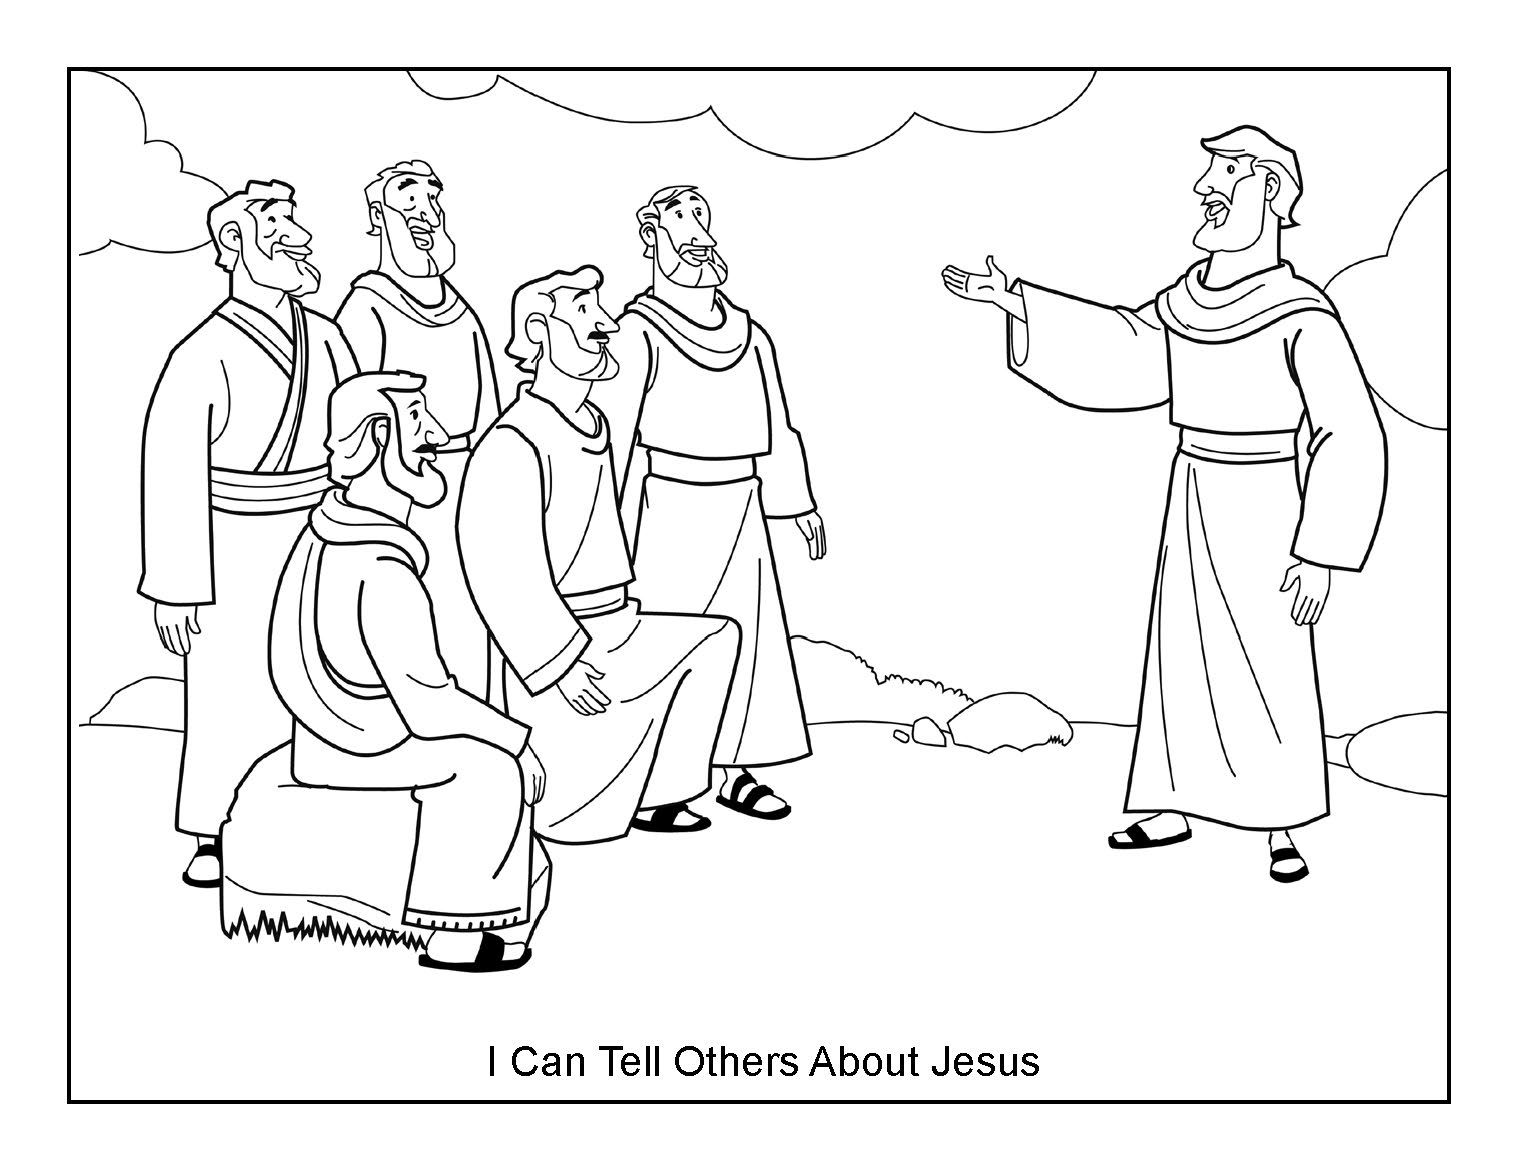 I Can Tell Others About Jesus Coloring Page on Sunday School Zone ...